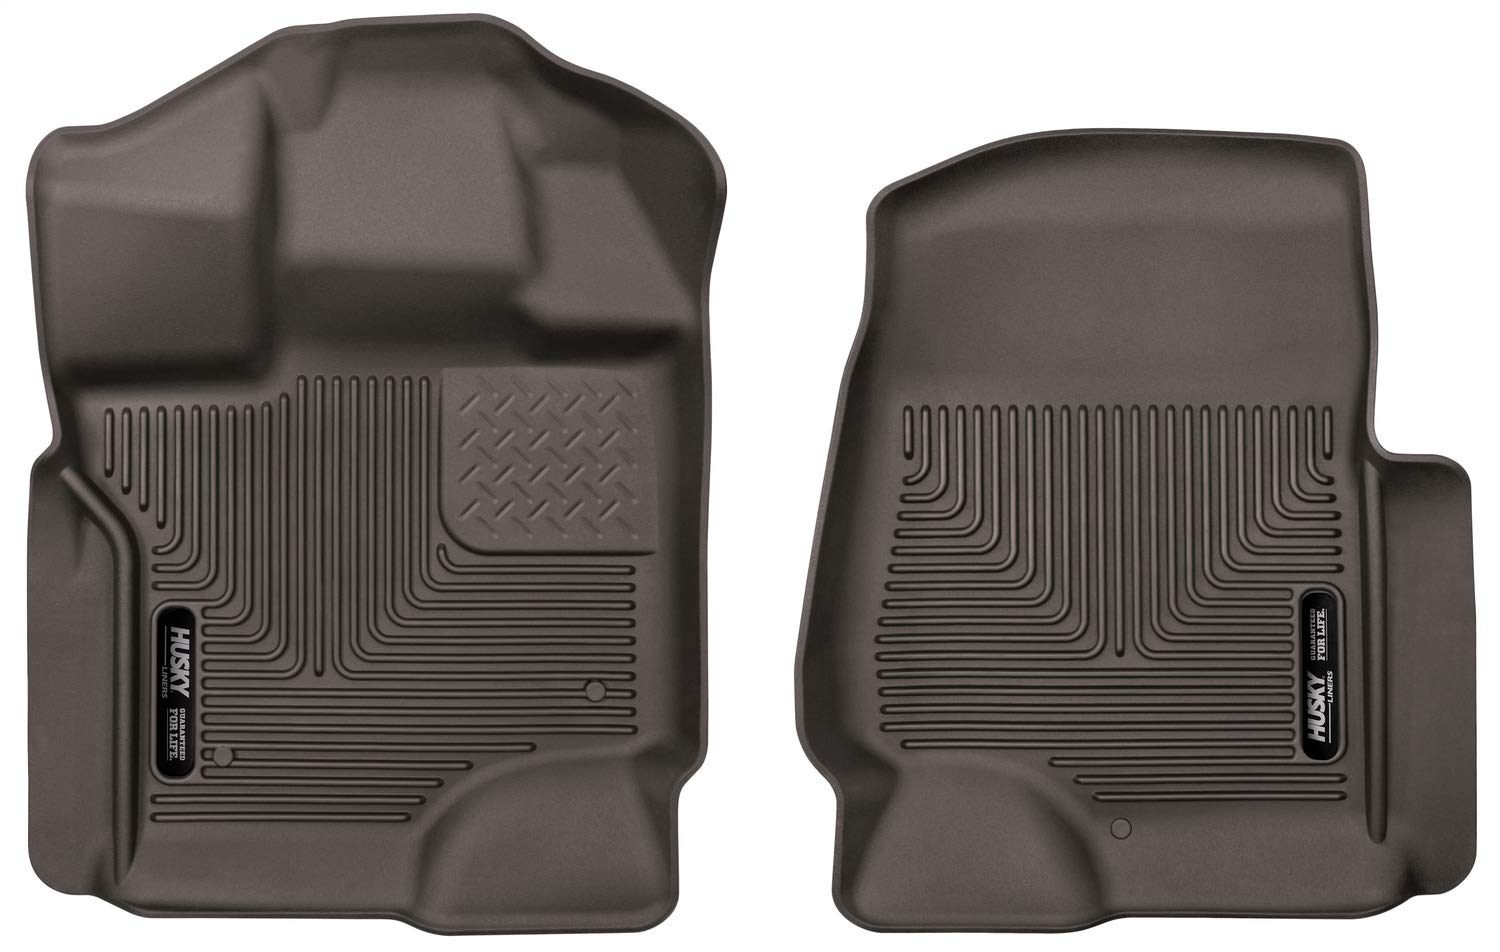 Full Coverage 2017-19 Ford F-250//F-350 Crew Cab Without Factory Storage Box X-act Contour 2nd Seat Floor Mat Husky Liners Fits 2015-19 Ford F-150 SuperCrew